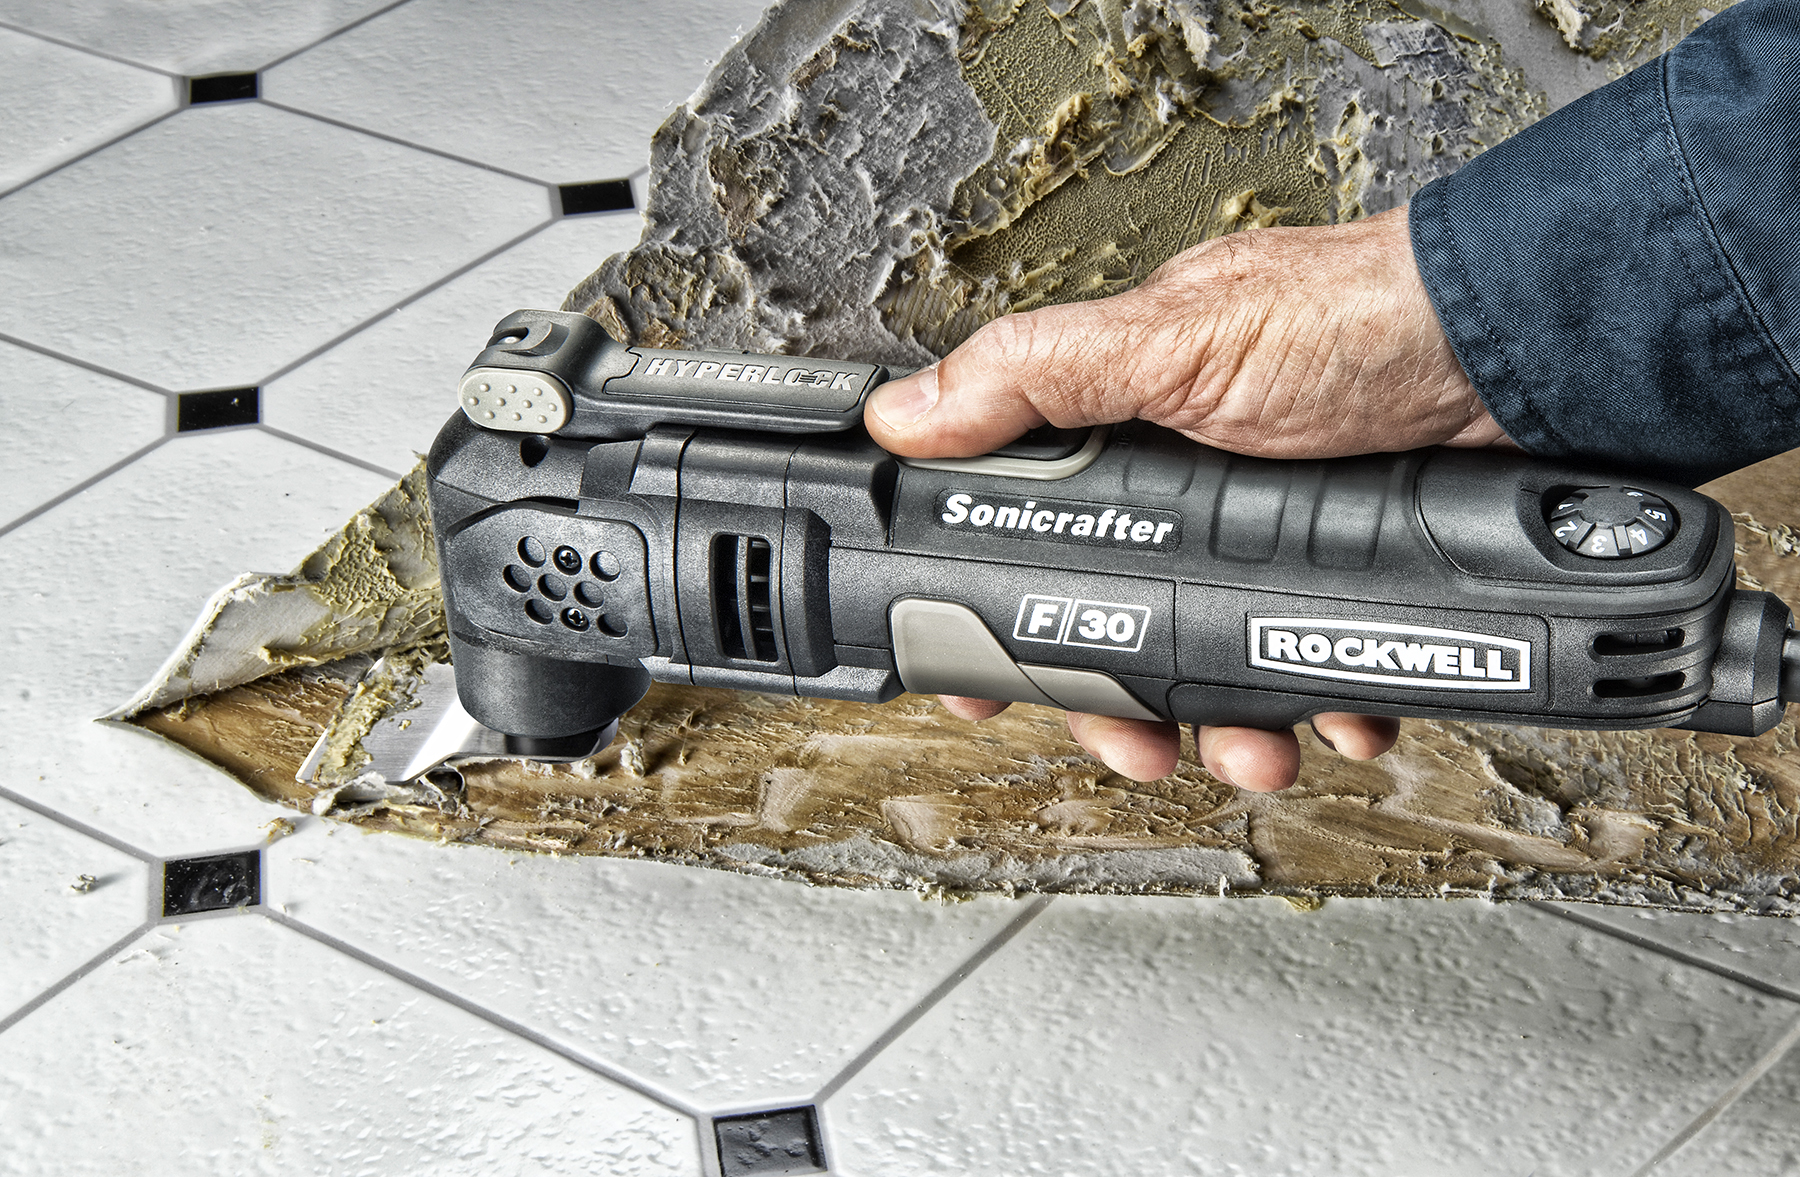 Rockwell s new sonicrafter f30 oscillating tools priced - Klean strip adhesive remover lowes ...